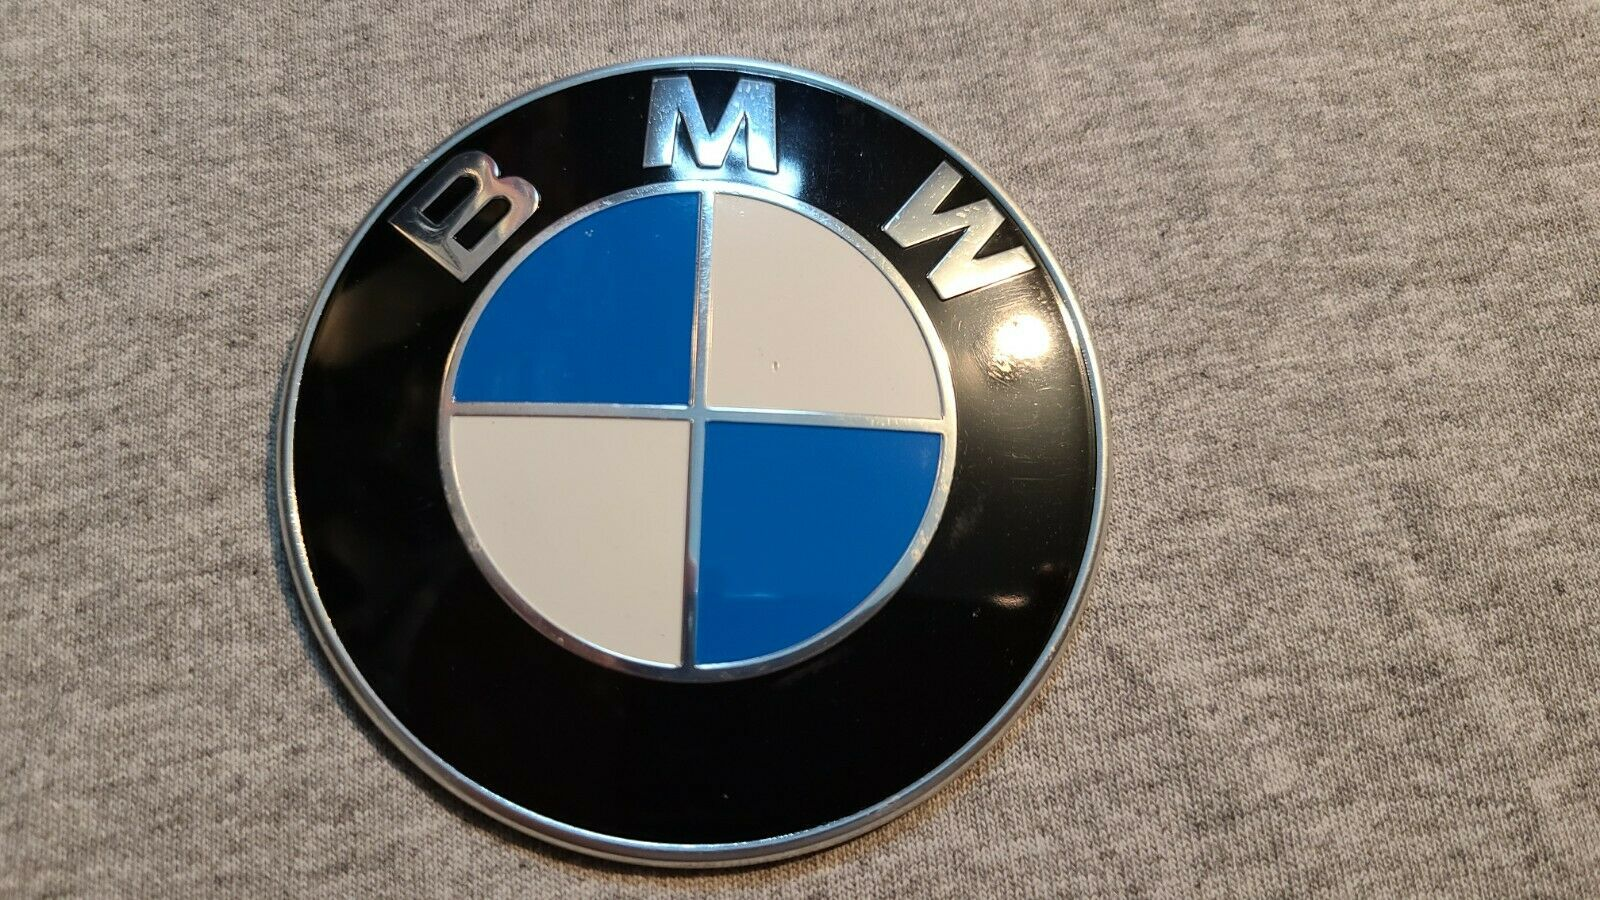 Bmw Emblem 3 Pin Front Hood Rear Truck Logo Badge Decal 728875202 4b4 For Sale Online Ebay